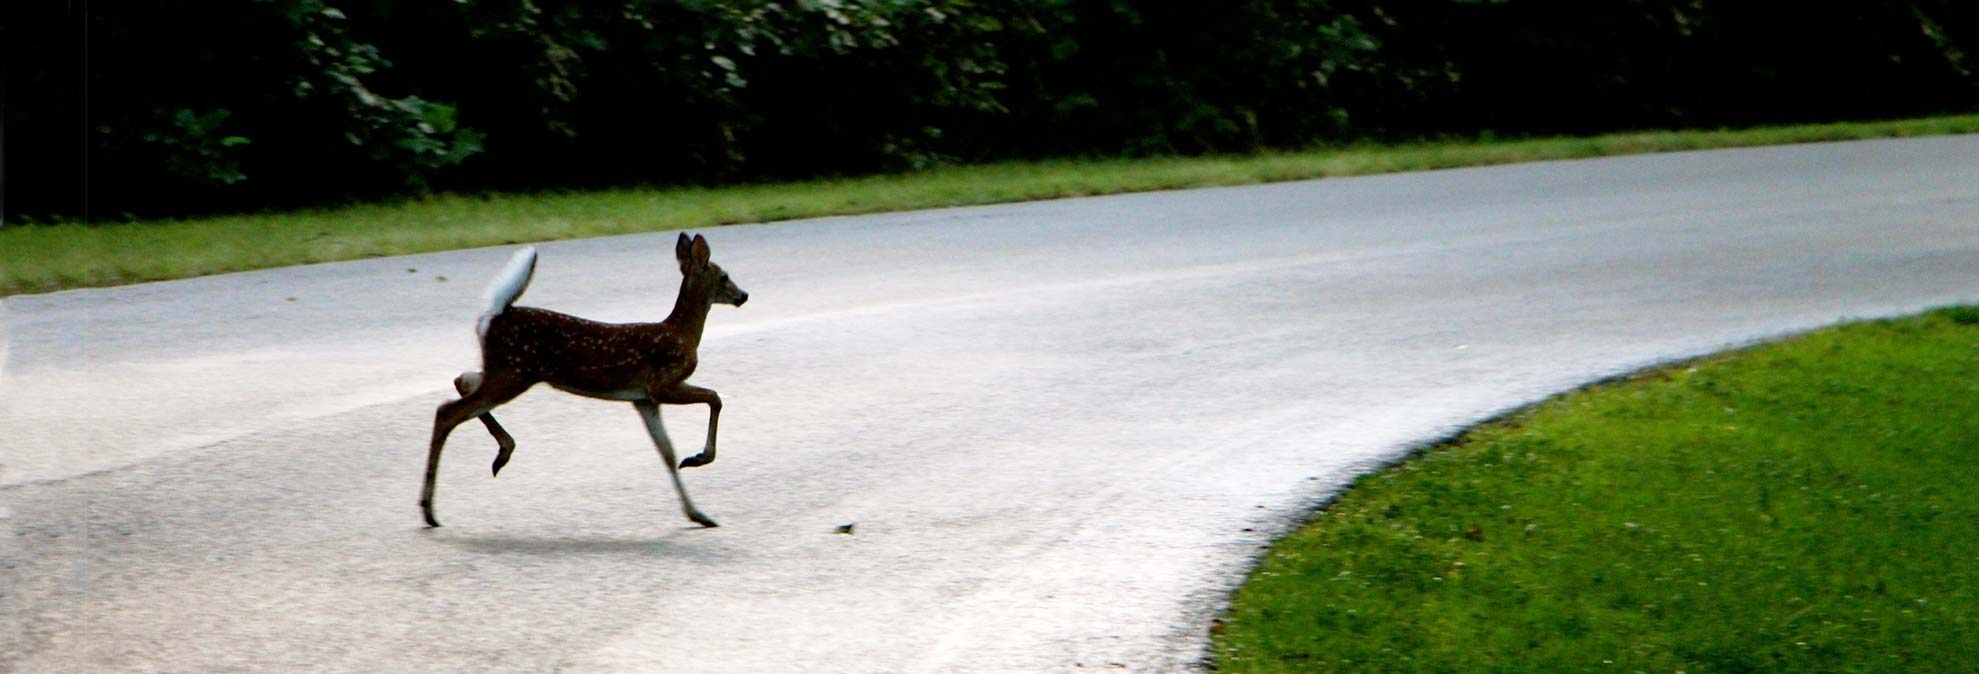 How to Avoid Collisions With Deer This Fall - Consumer Reports